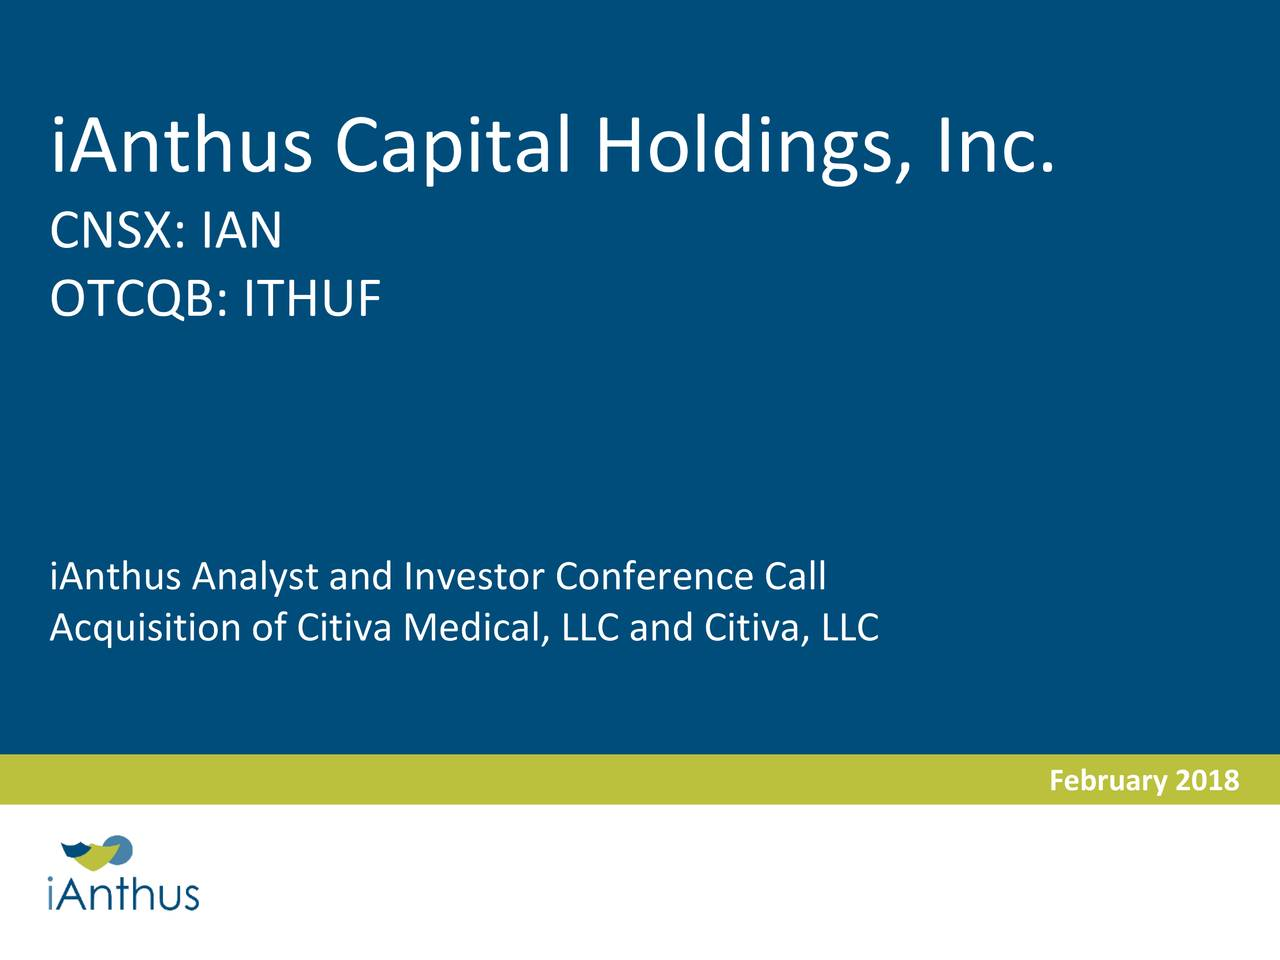 CNSX: IAN OTCQB: ITHUF iAnthus Analyst and Investor Conference Call Acquisition of Citiva Medical, LLC and Citiva, LLC February 2018